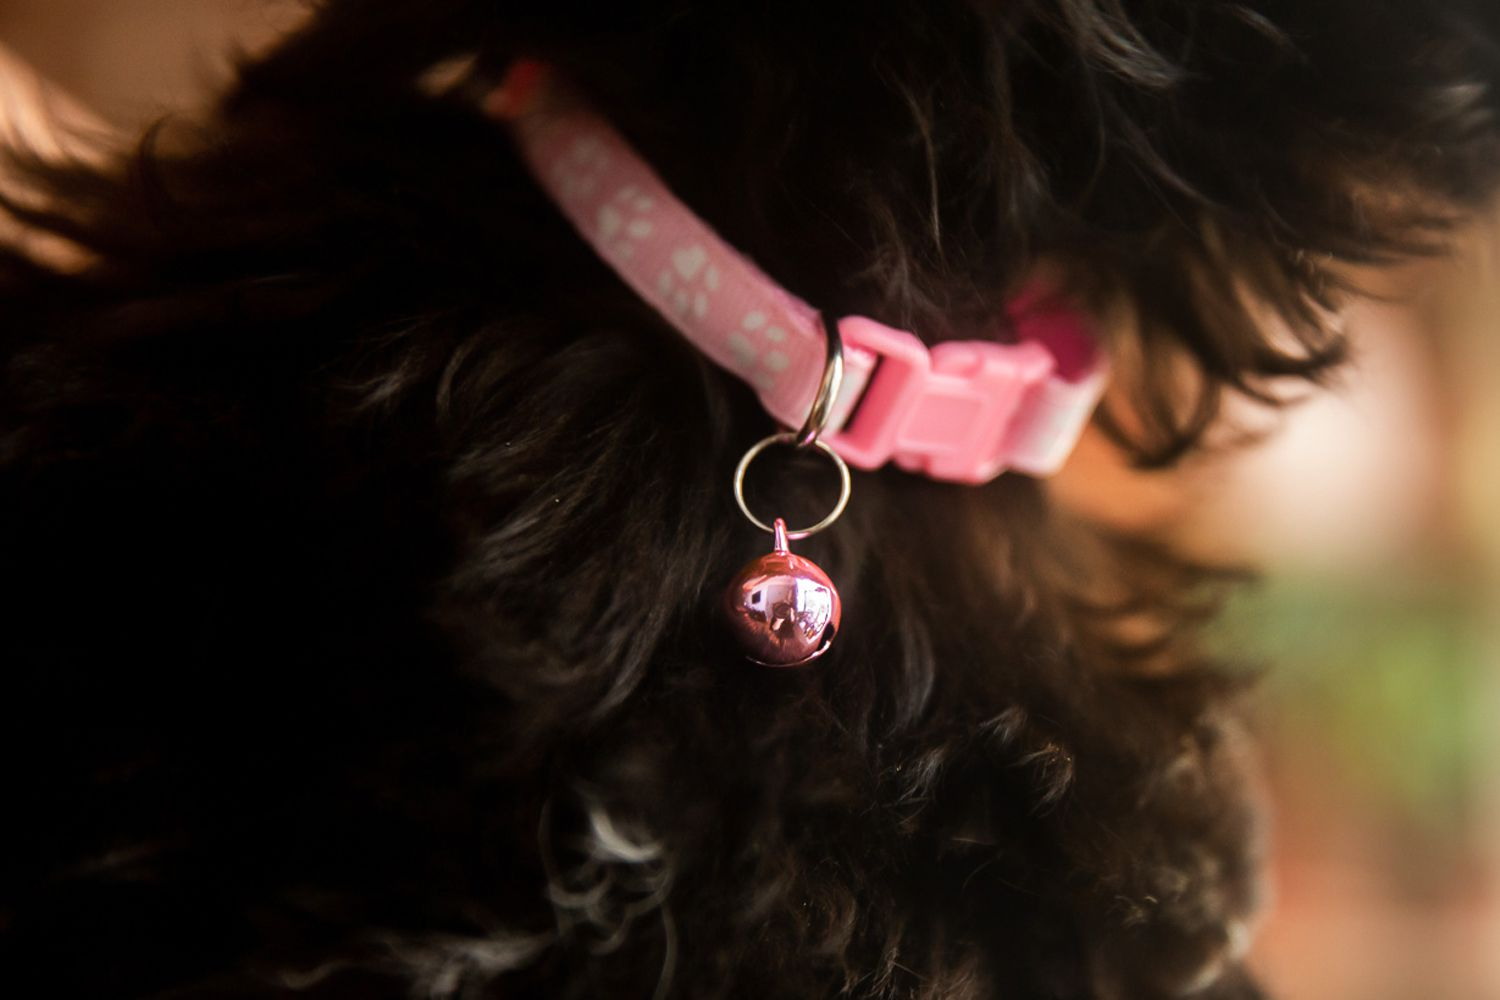 Pink dog collar with pink bell on black puppy's neck closeup